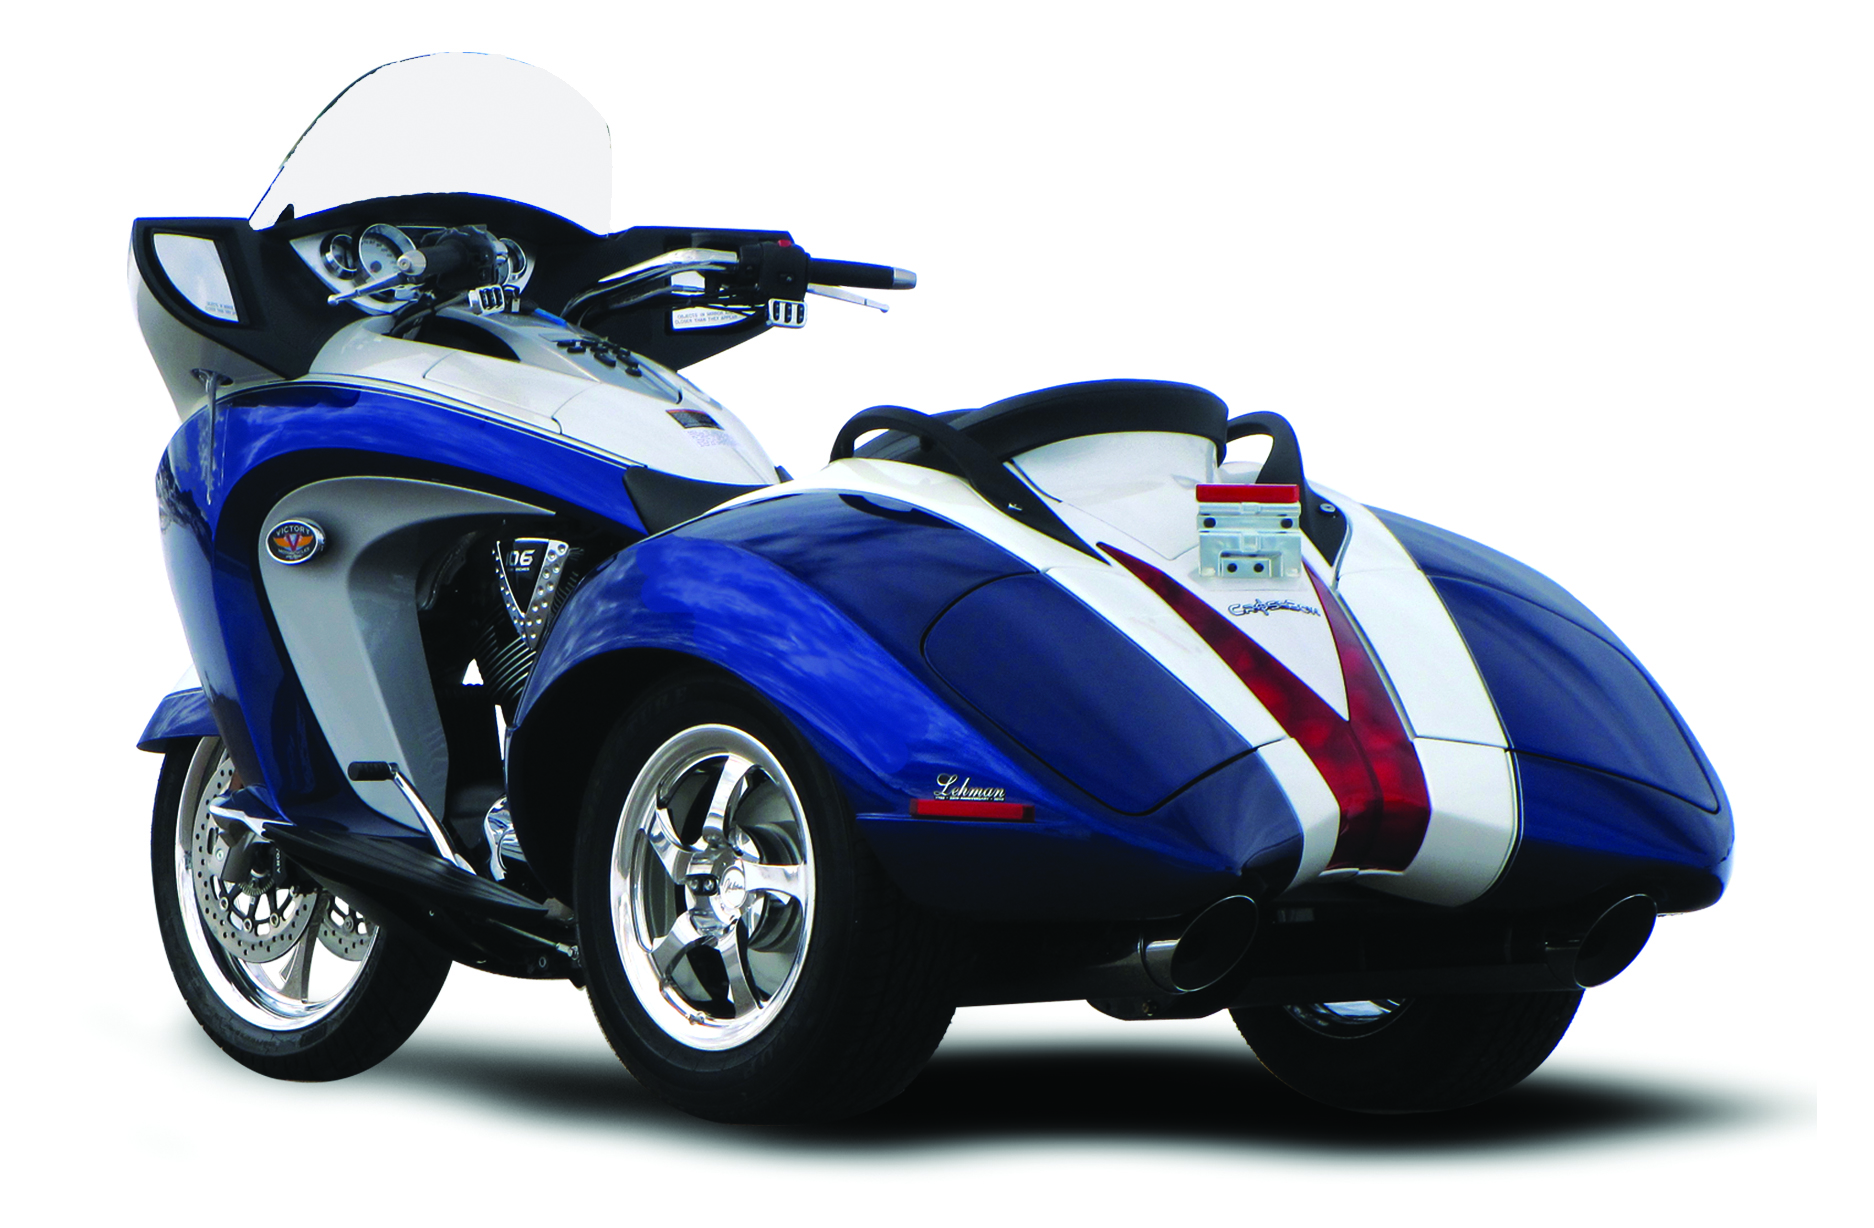 lehman trikes crossbow redefining the concept of luxury touring trike moto zombdrive com. Black Bedroom Furniture Sets. Home Design Ideas